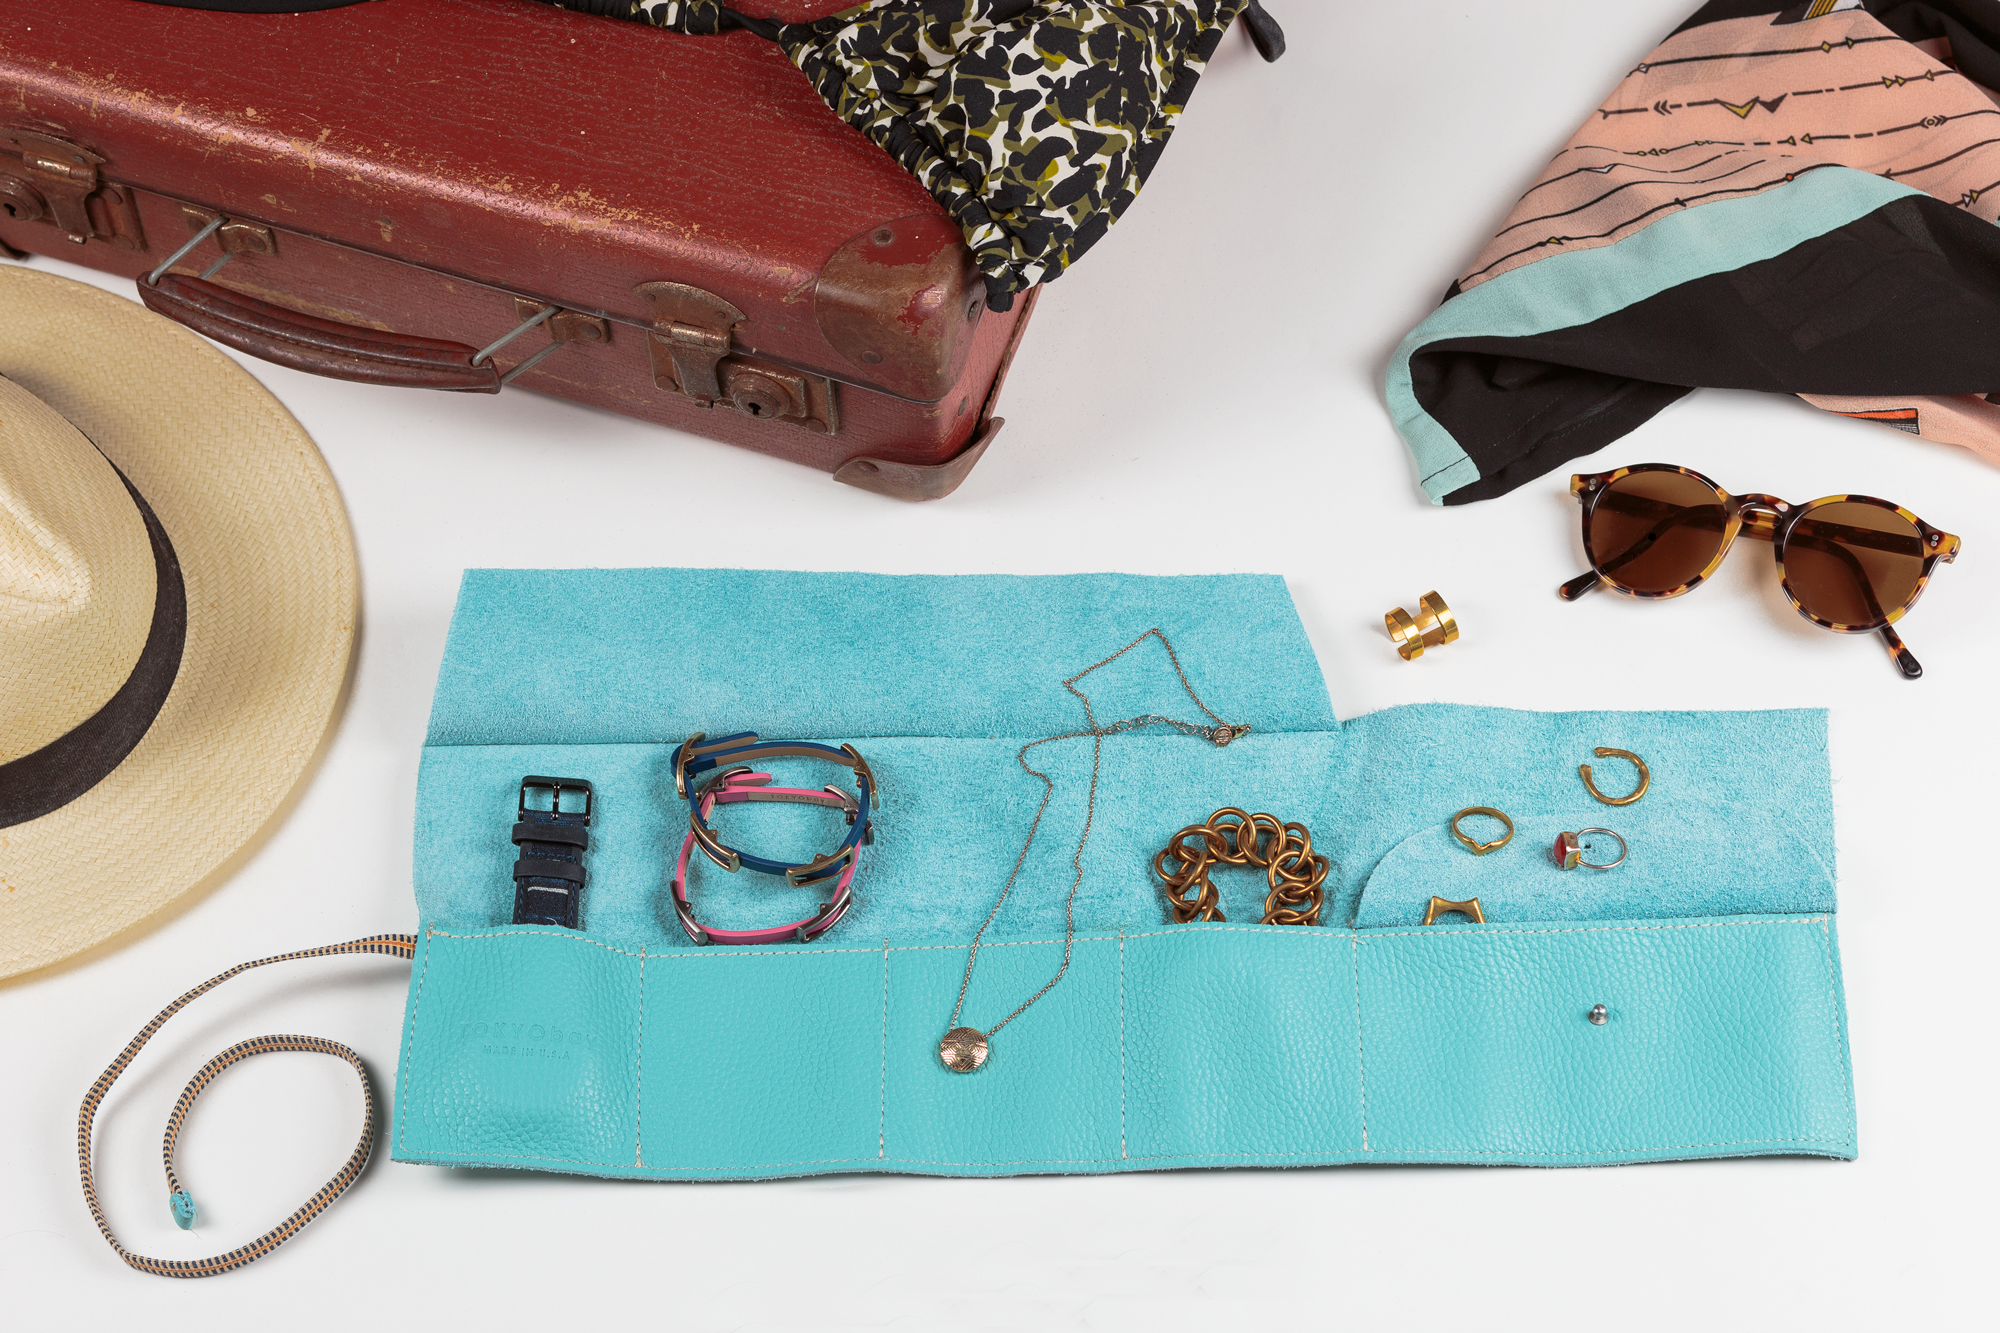 Jewelry-Roll-with-Objects-Still-Life3_Full-Size-web.jpg